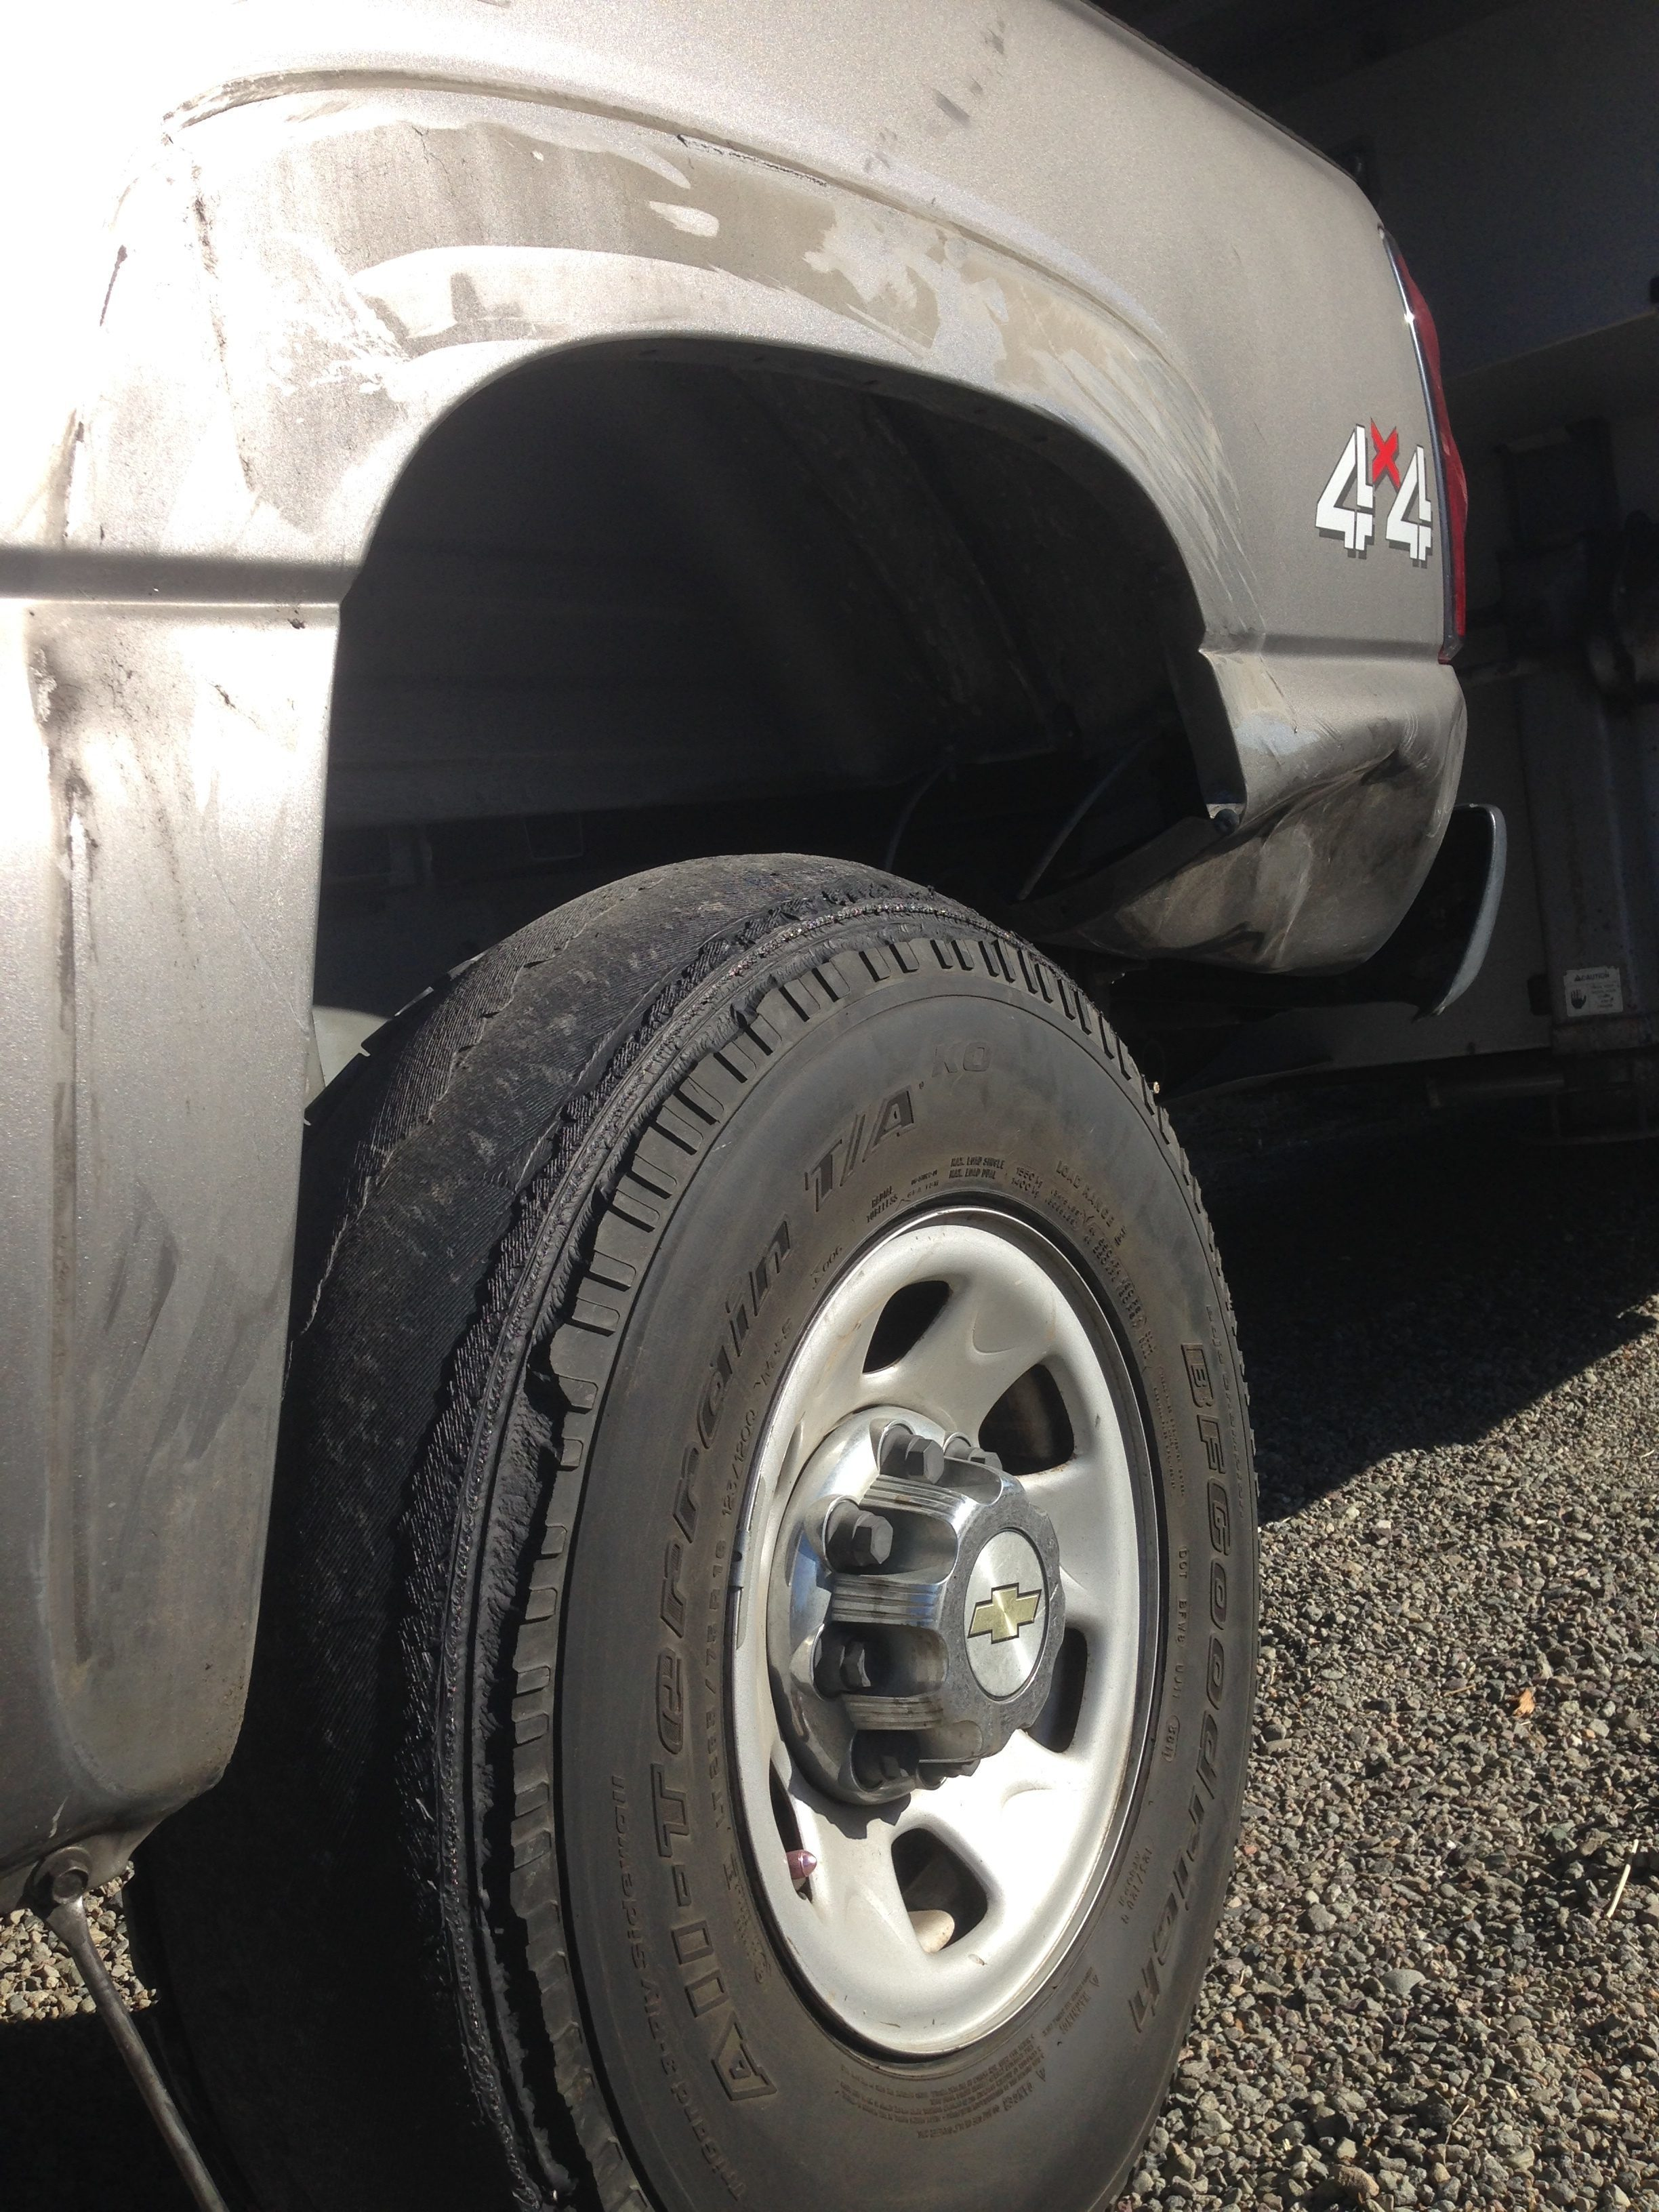 Top 153 Complaints and Reviews about B.F. Goodrich Tires